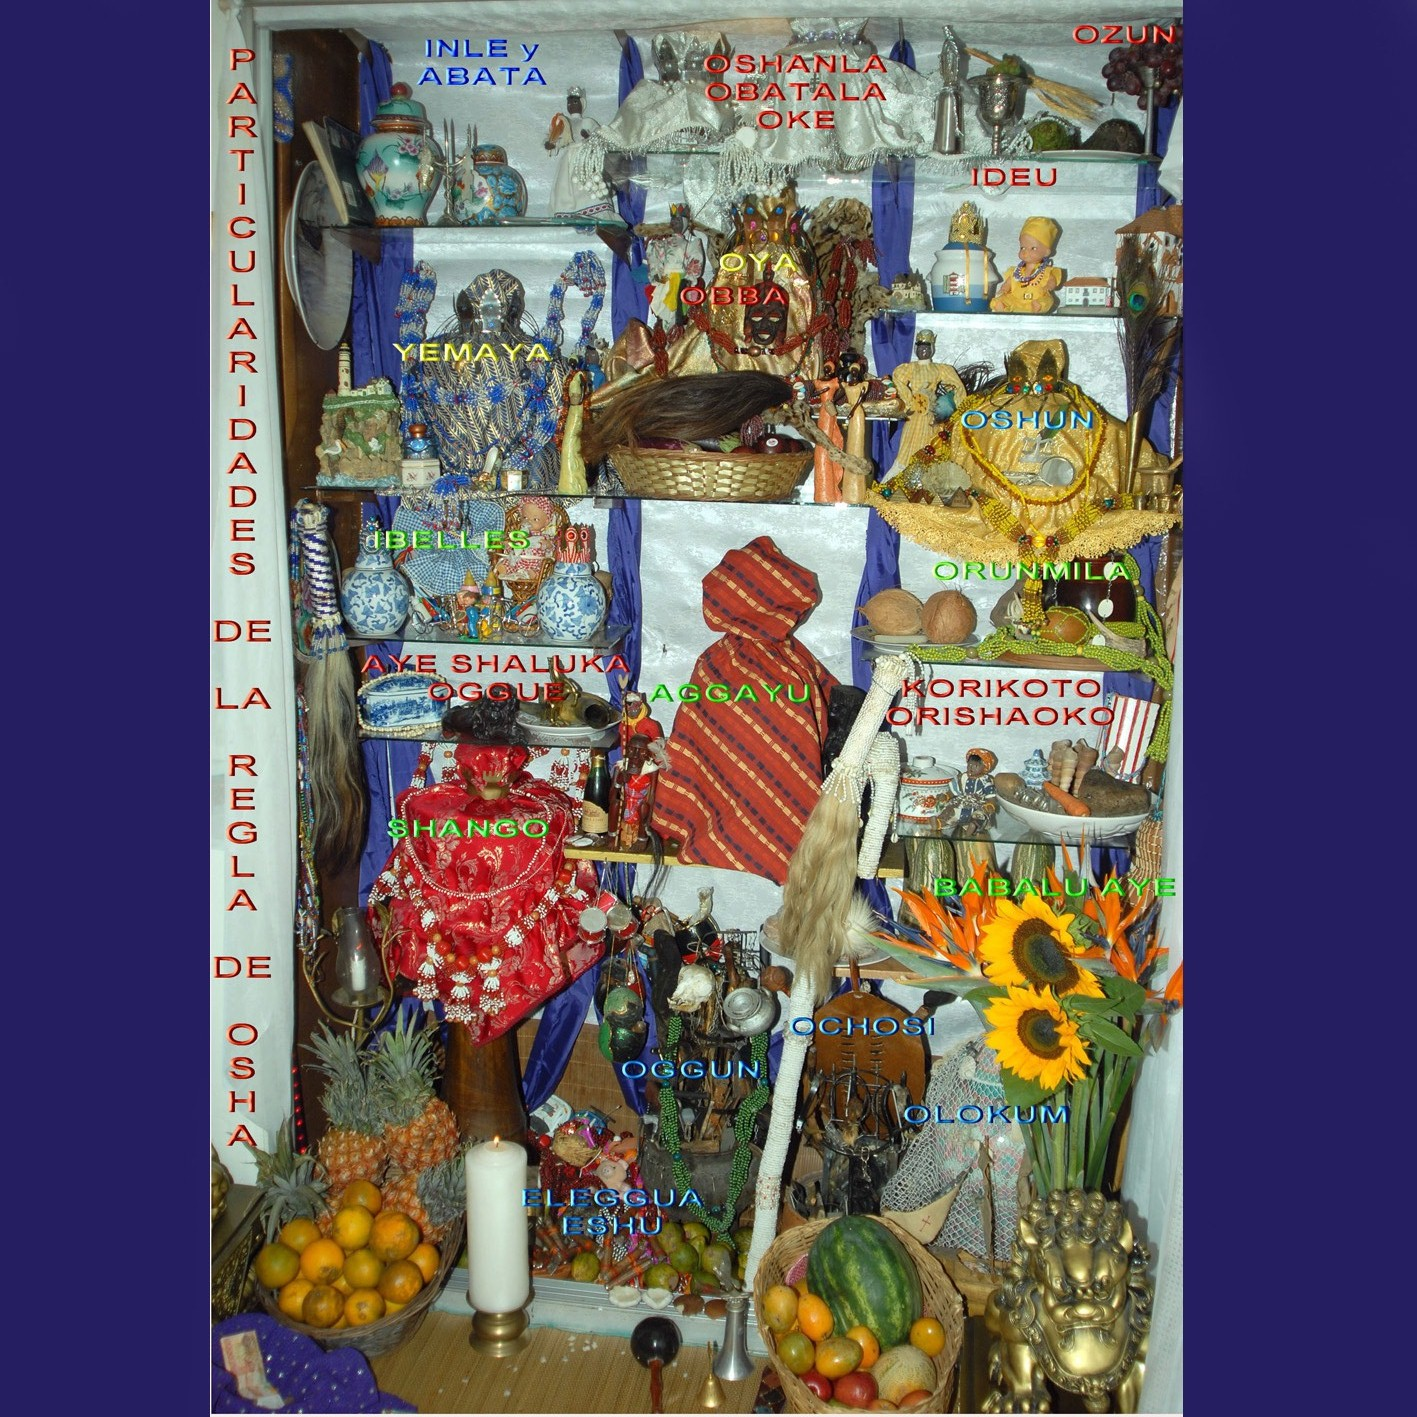 REGLA_OSHA_YORUBA (Santeria)